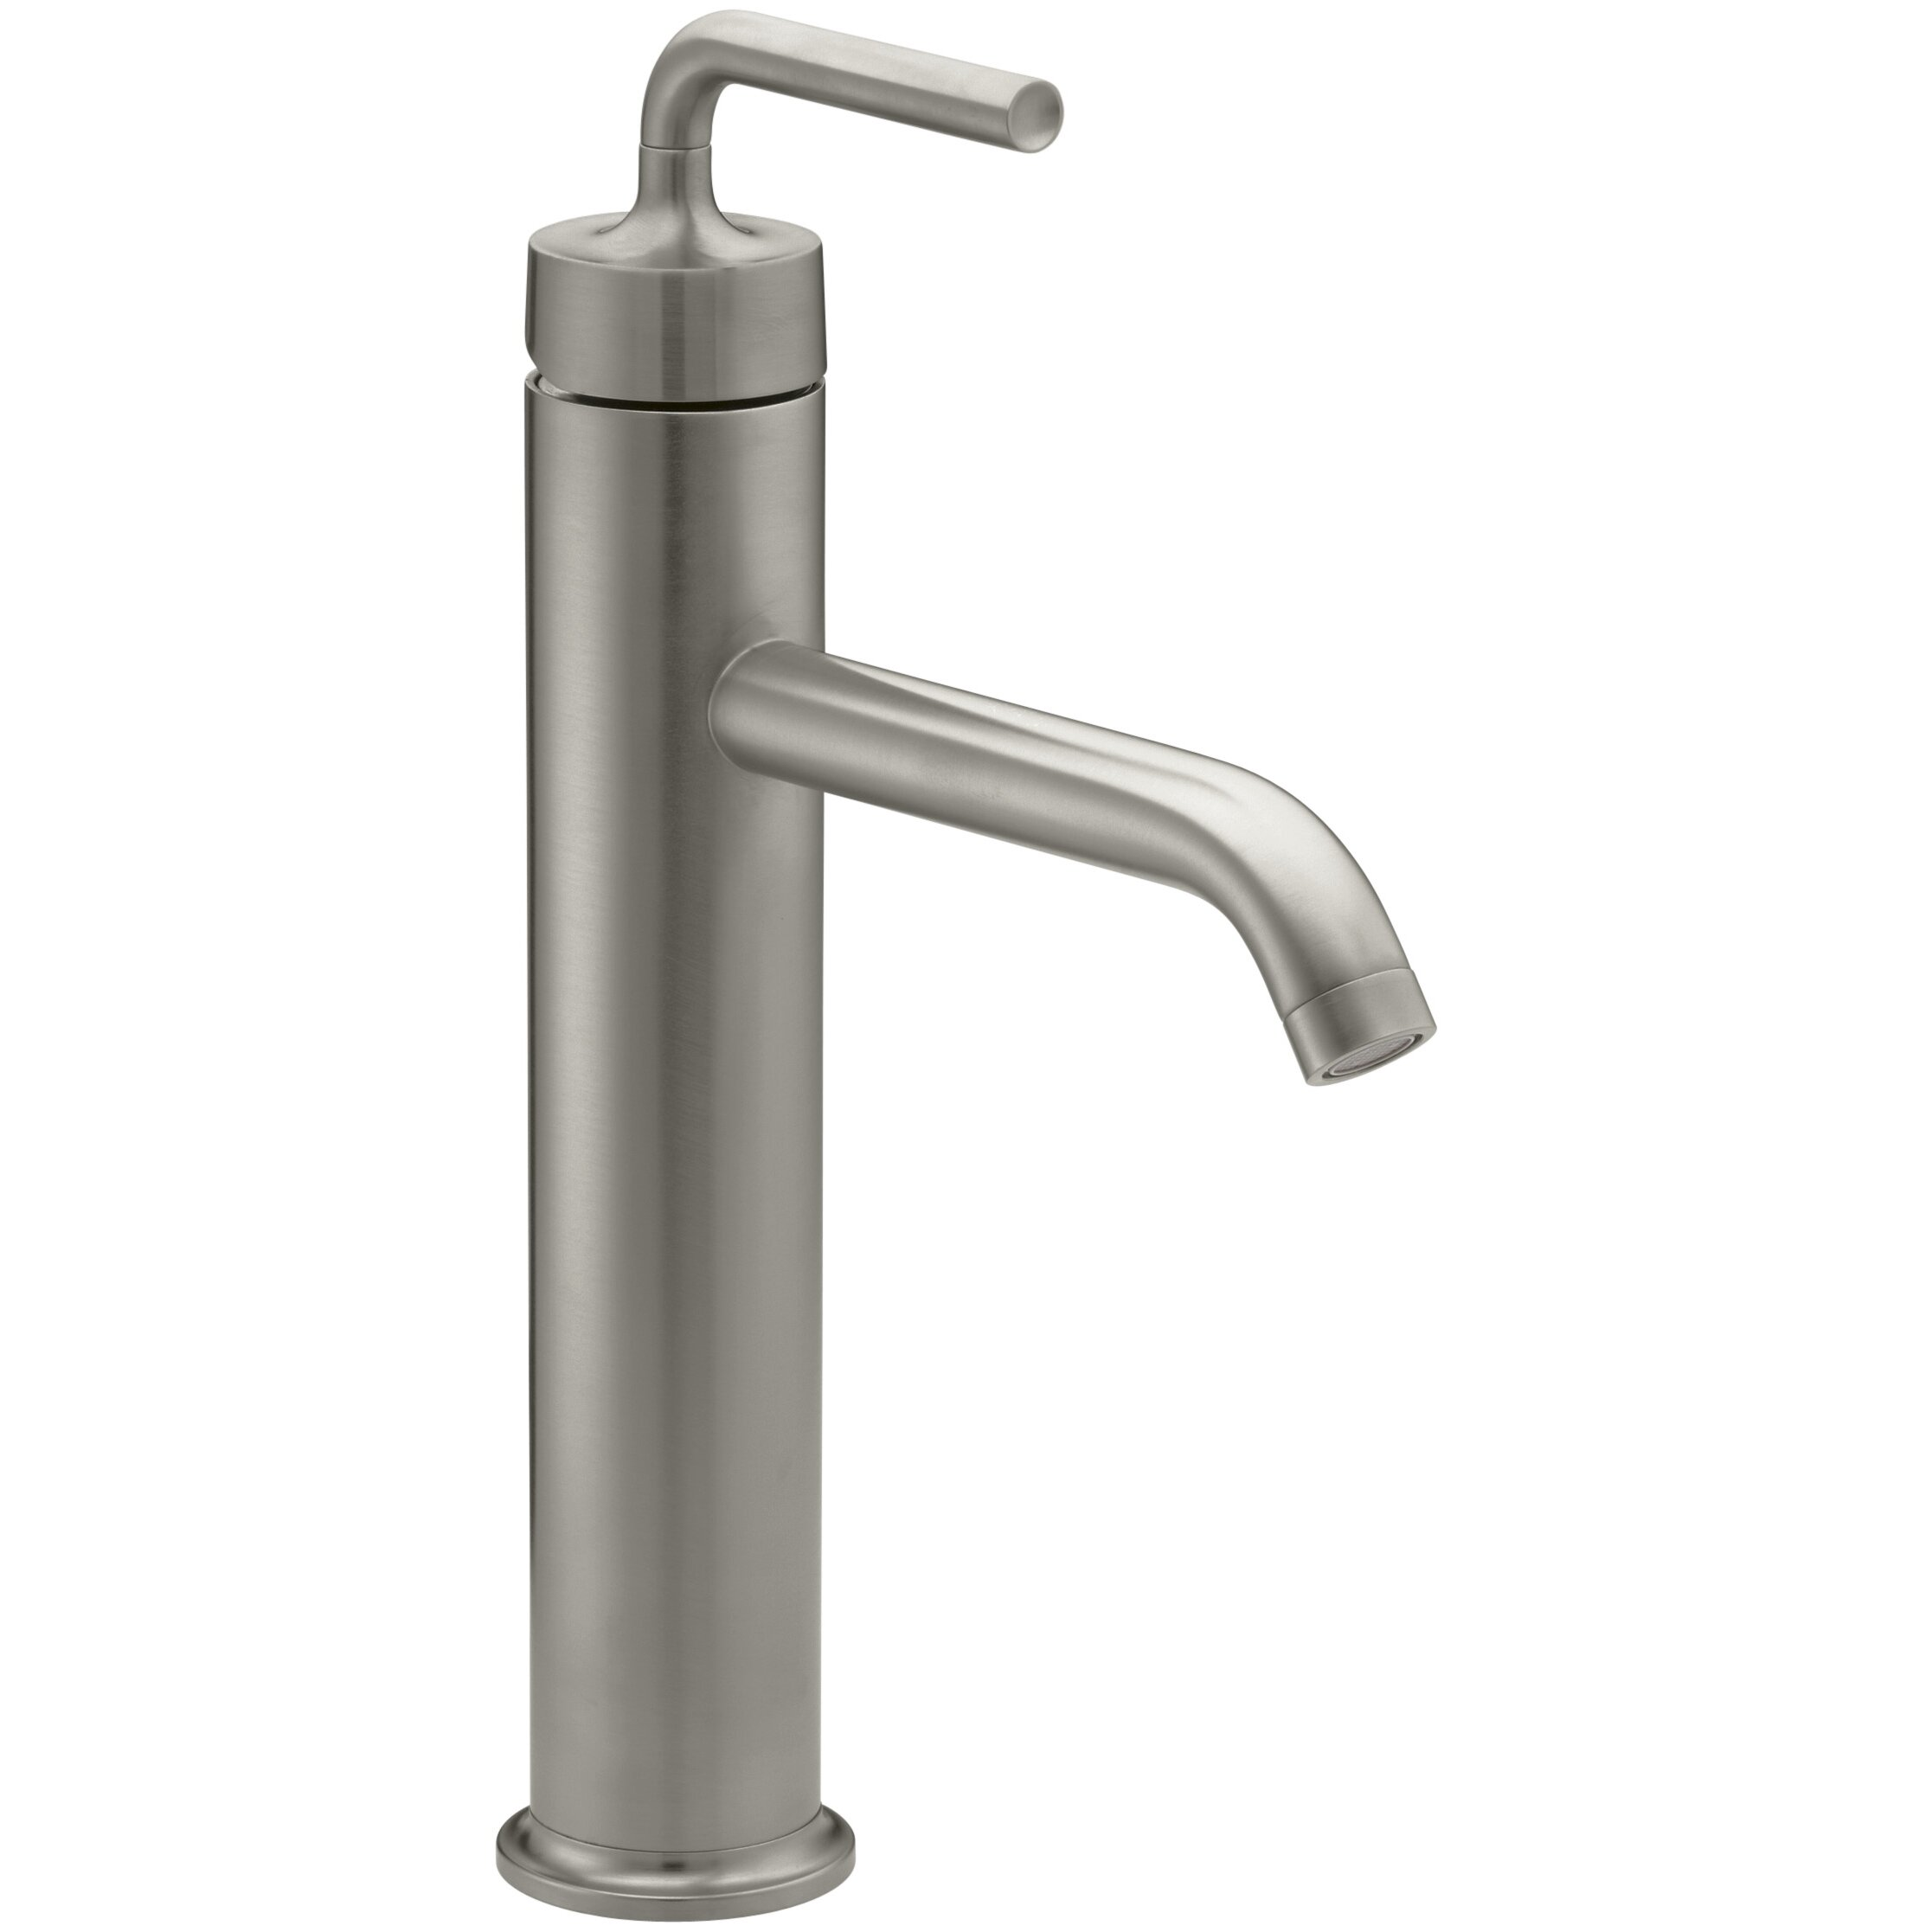 Kohler Faucet Reviews : ... Single-Hole Bathroom Sink Faucet with Straight Lever Handle by Kohler